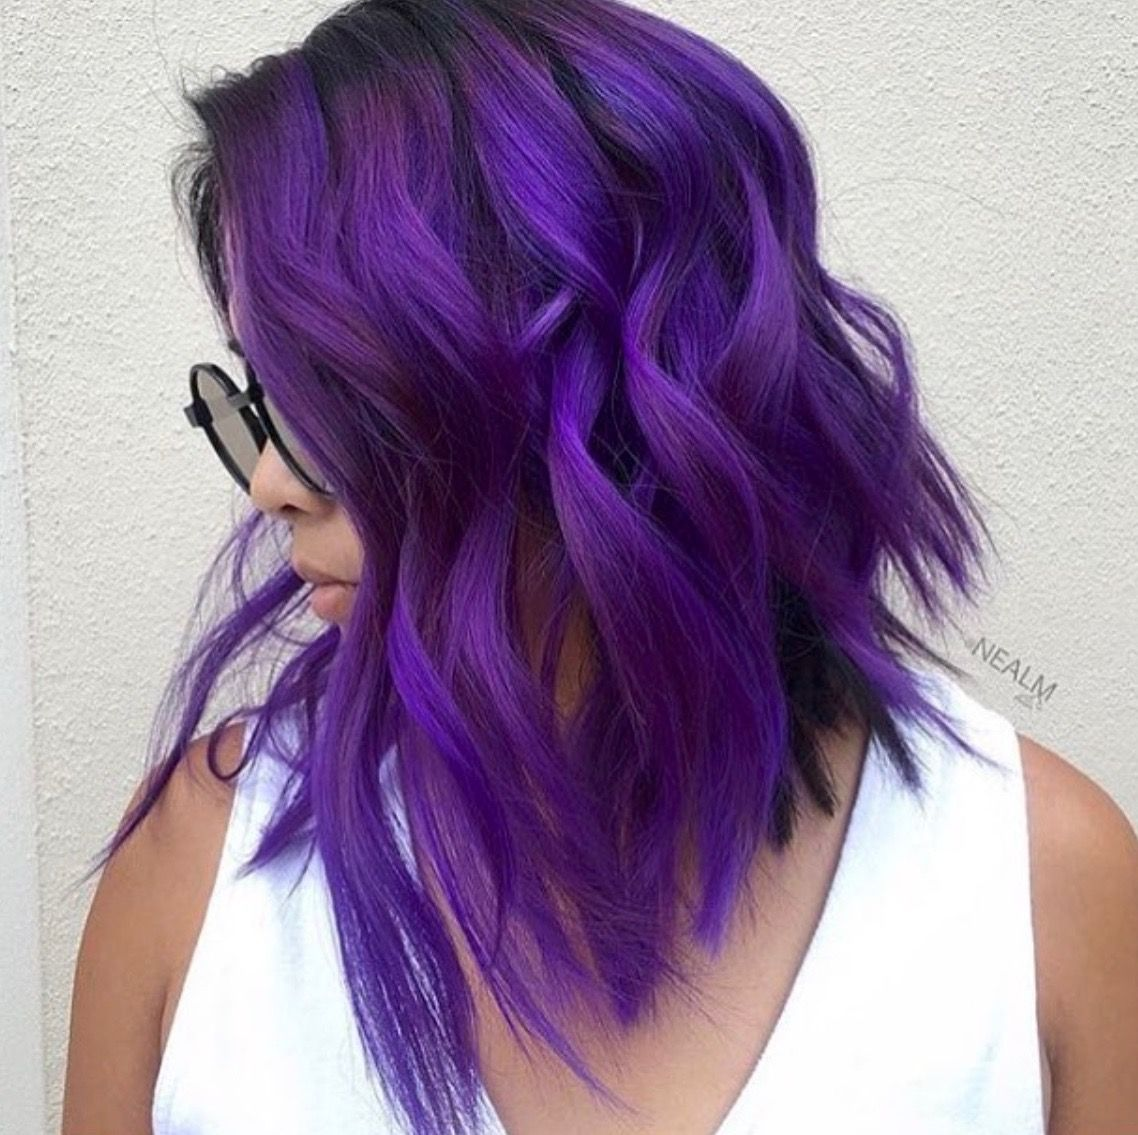 63 Purple Hair Color Ideas To Swoon Over Violet Purple Hair Dye Tips: Raw Indian Hair Extensions